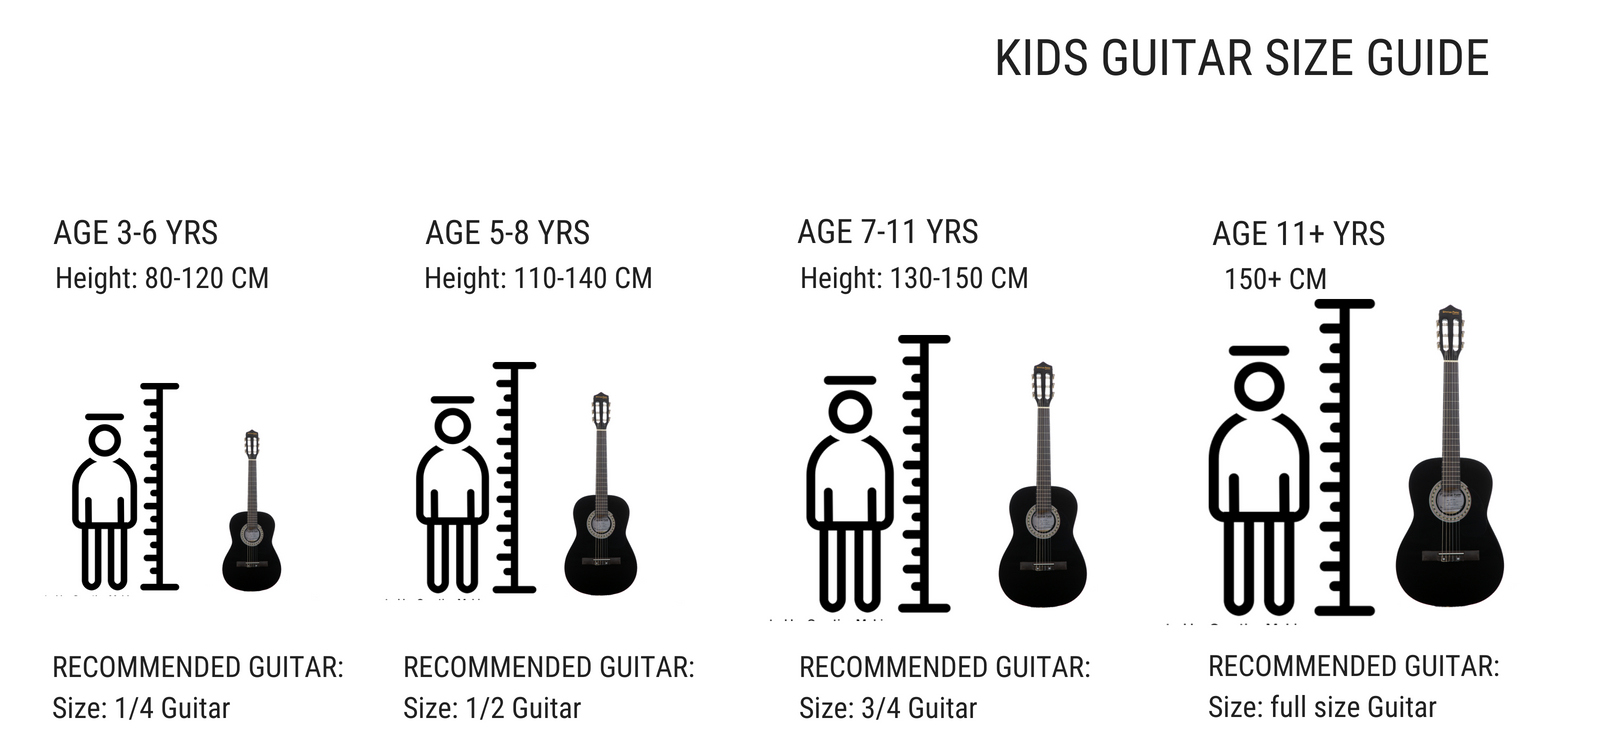 kids-guitar-size-guide-category-image-stretton-payne-copy.jpg